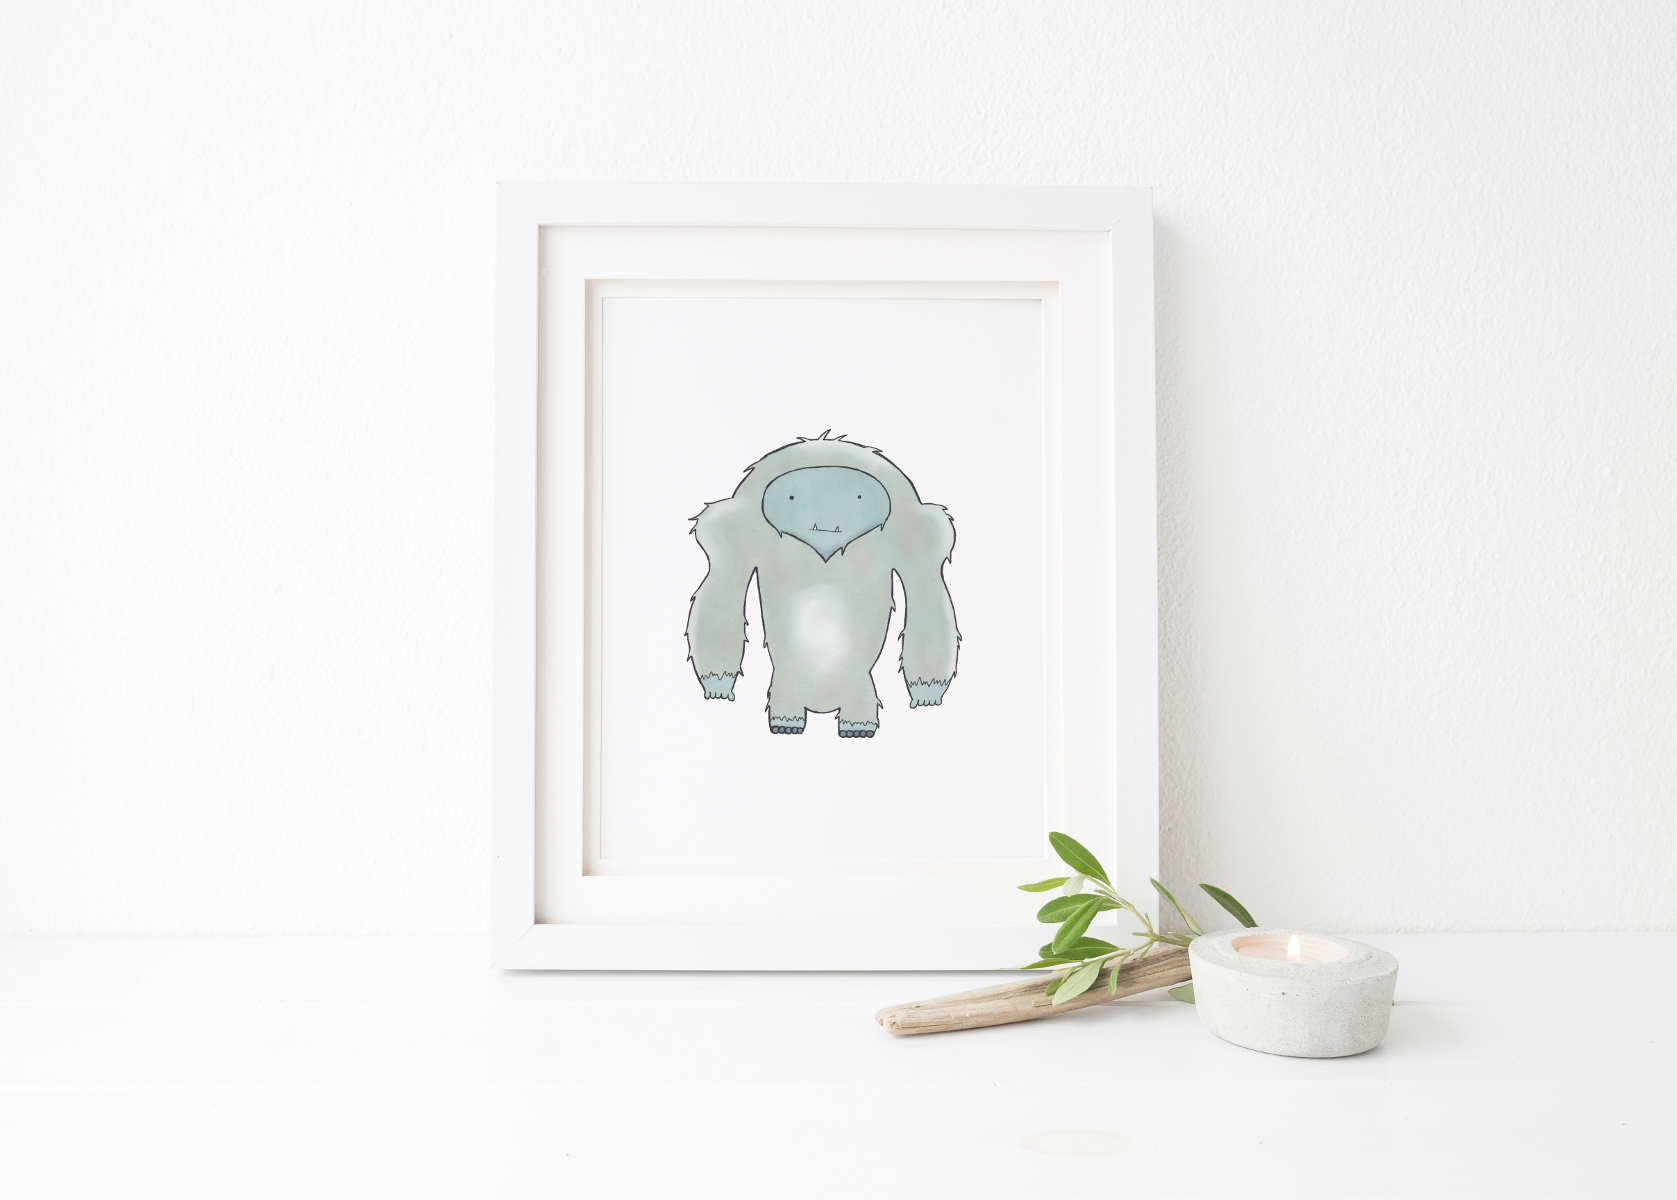 Cute, high quality, arrived quickly. The artist takes a lot of care & pays attention to the little details. Love supporting a Colorado artist! Will be a perfect addition to my son's nursery. Thanks!! - rachelgraci [from etsy]